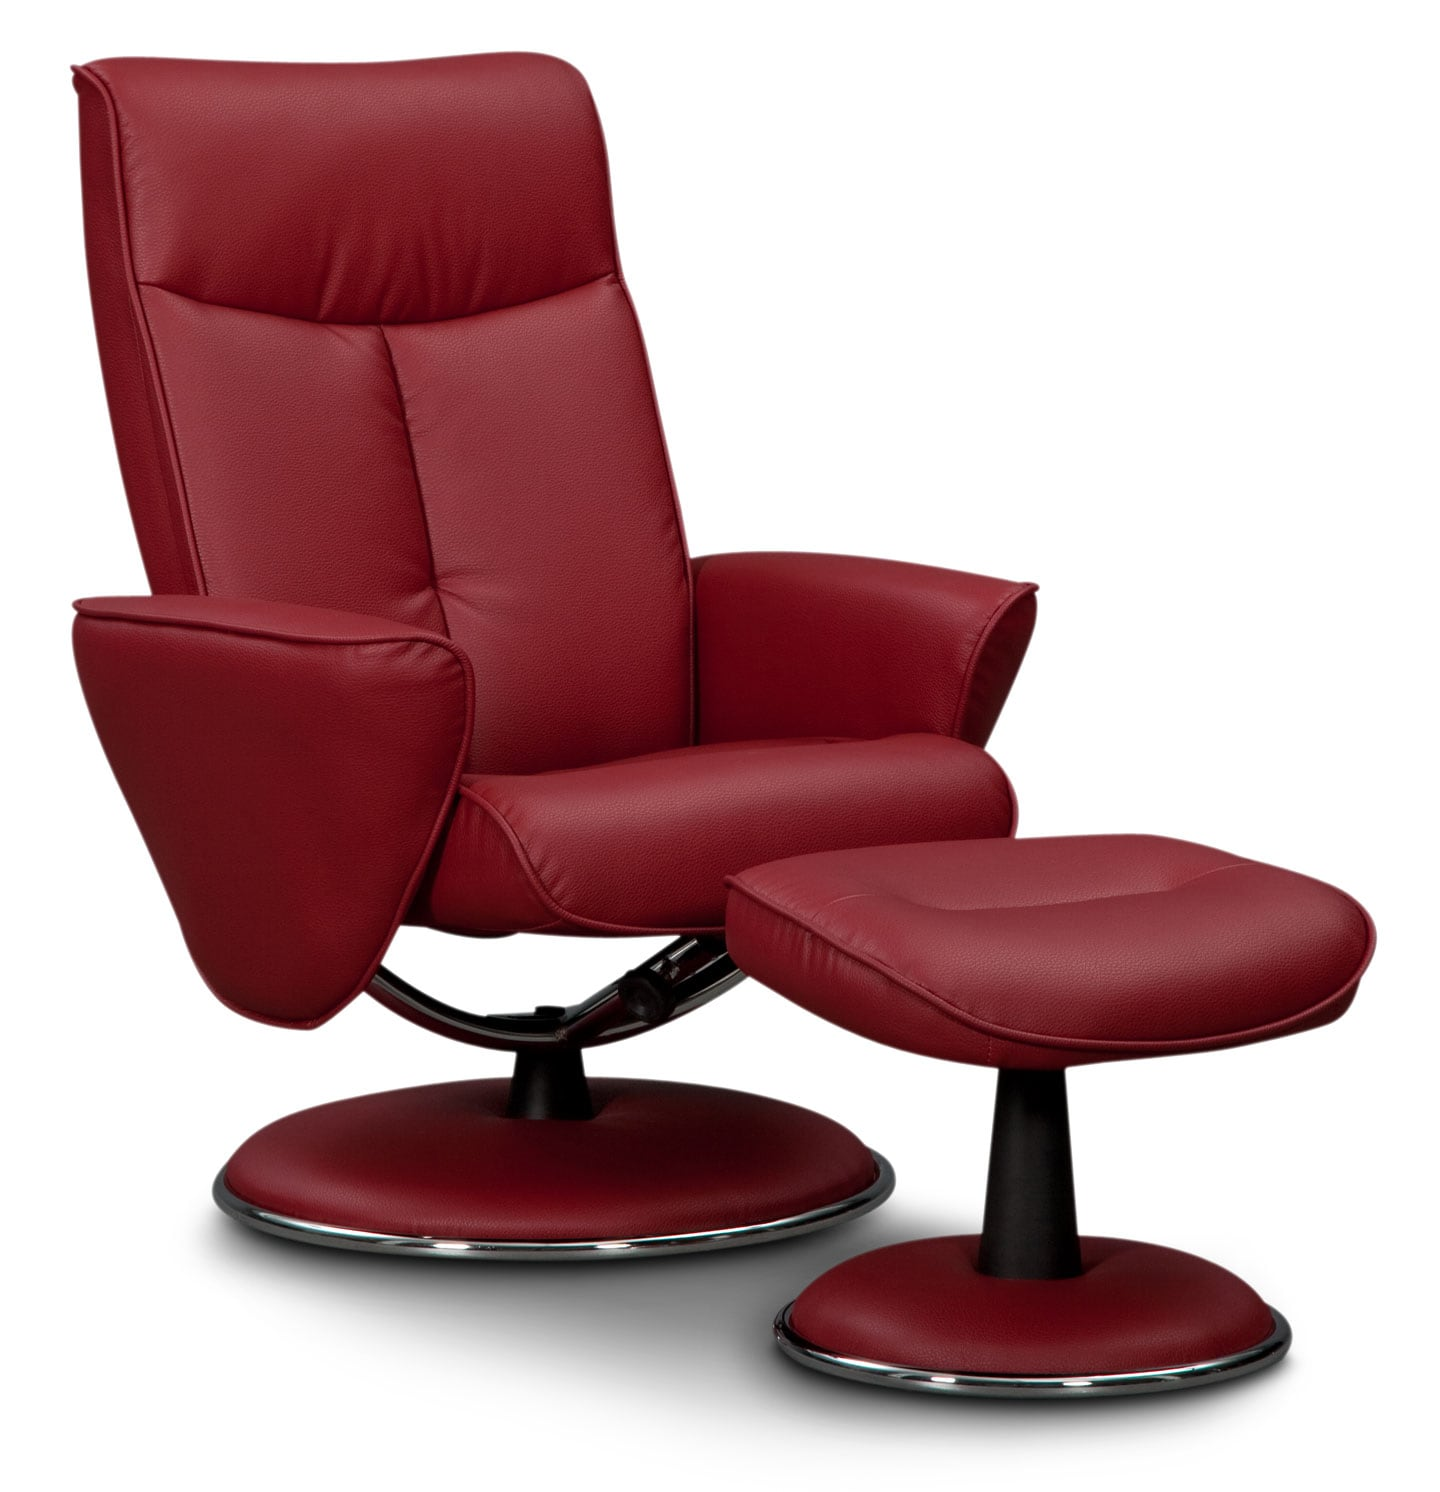 Living Room Furniture - Tracer Reclining Chair and Ottoman - Red